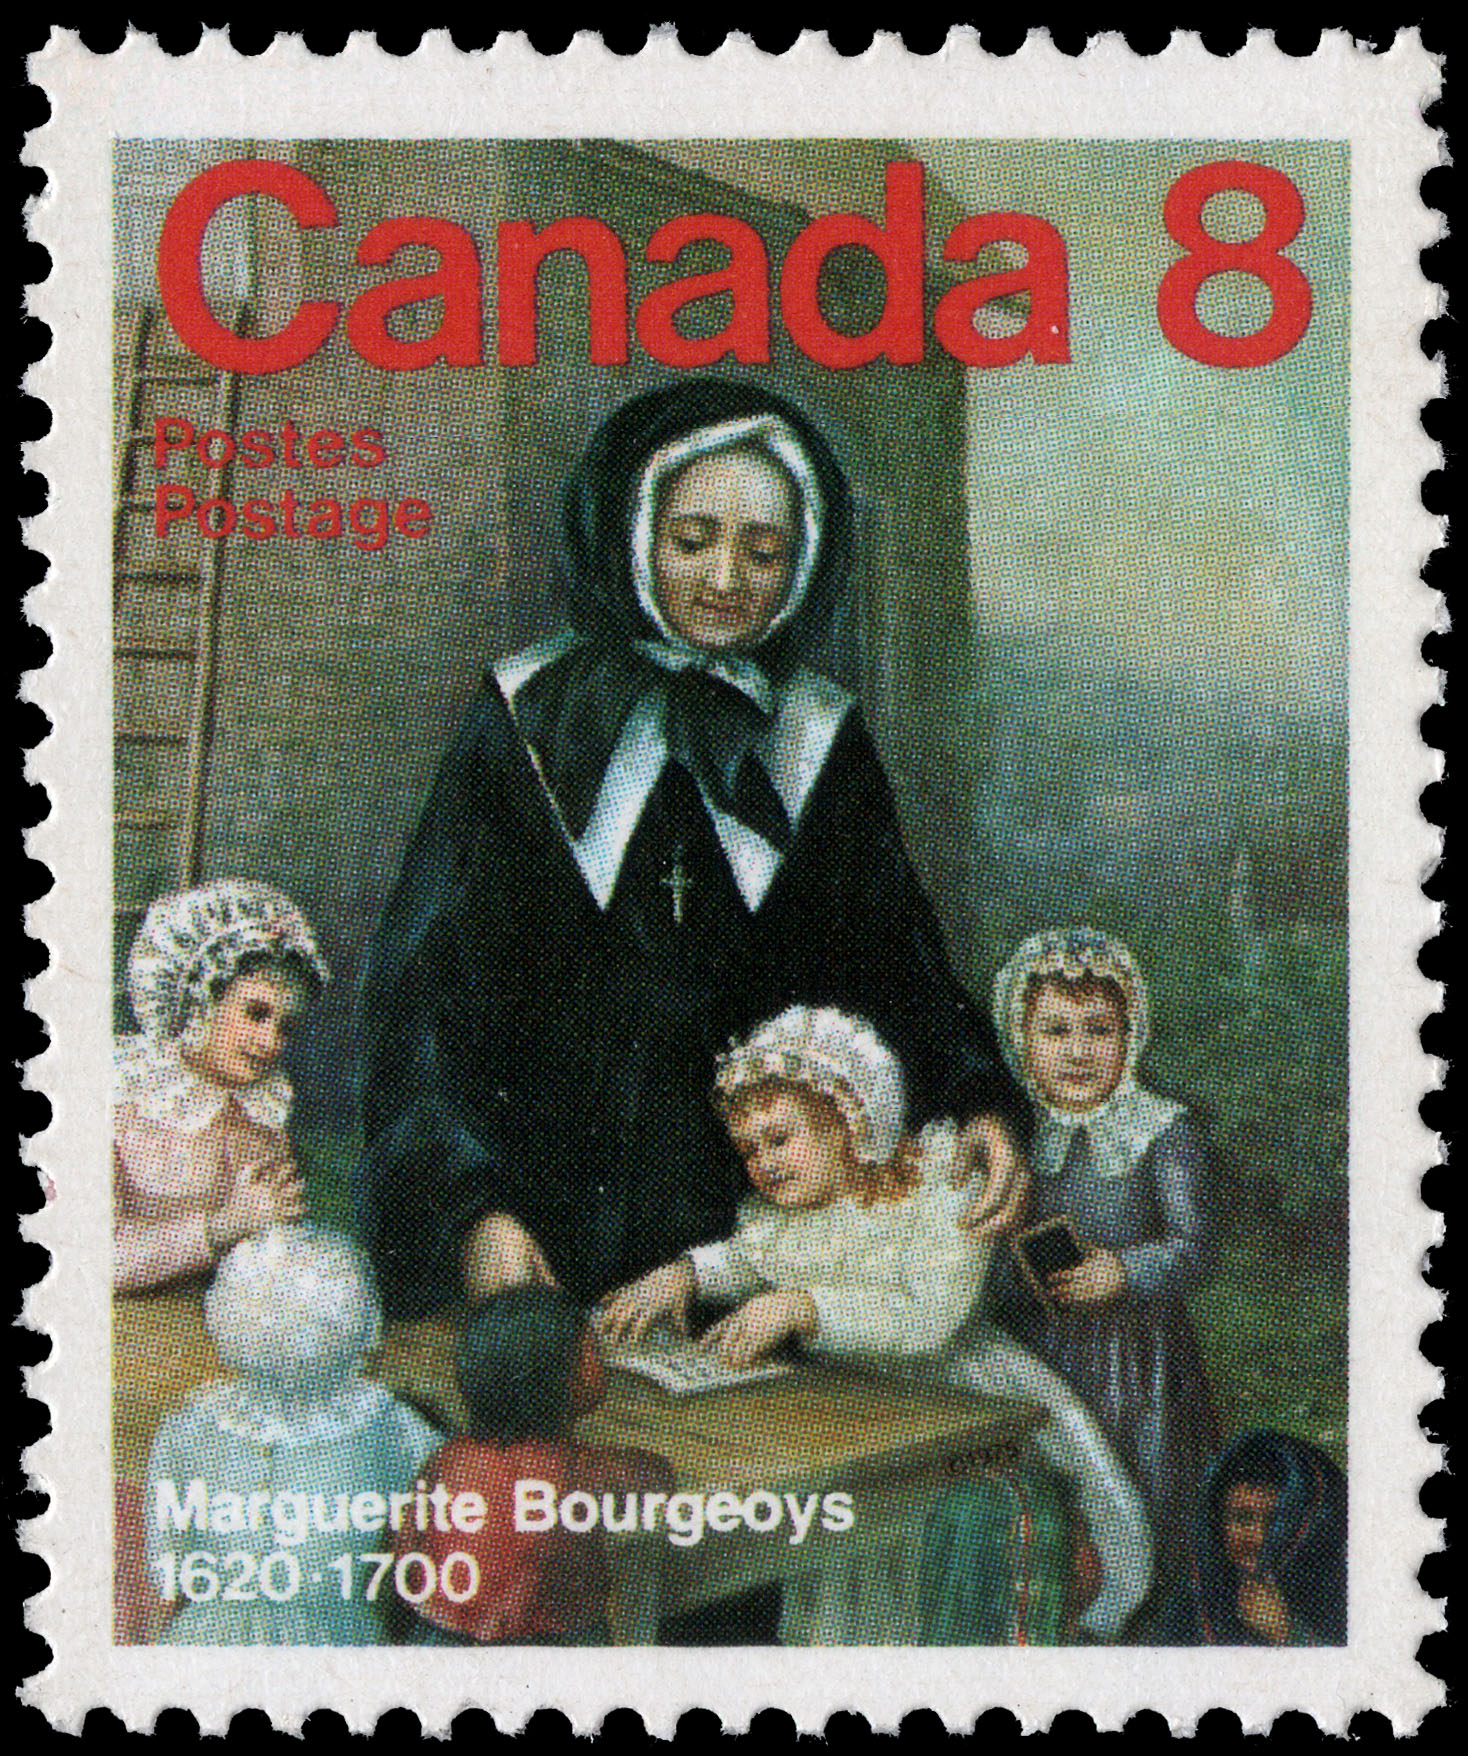 Marguerite Bourgeoys, 1620-1700 Canada Postage Stamp